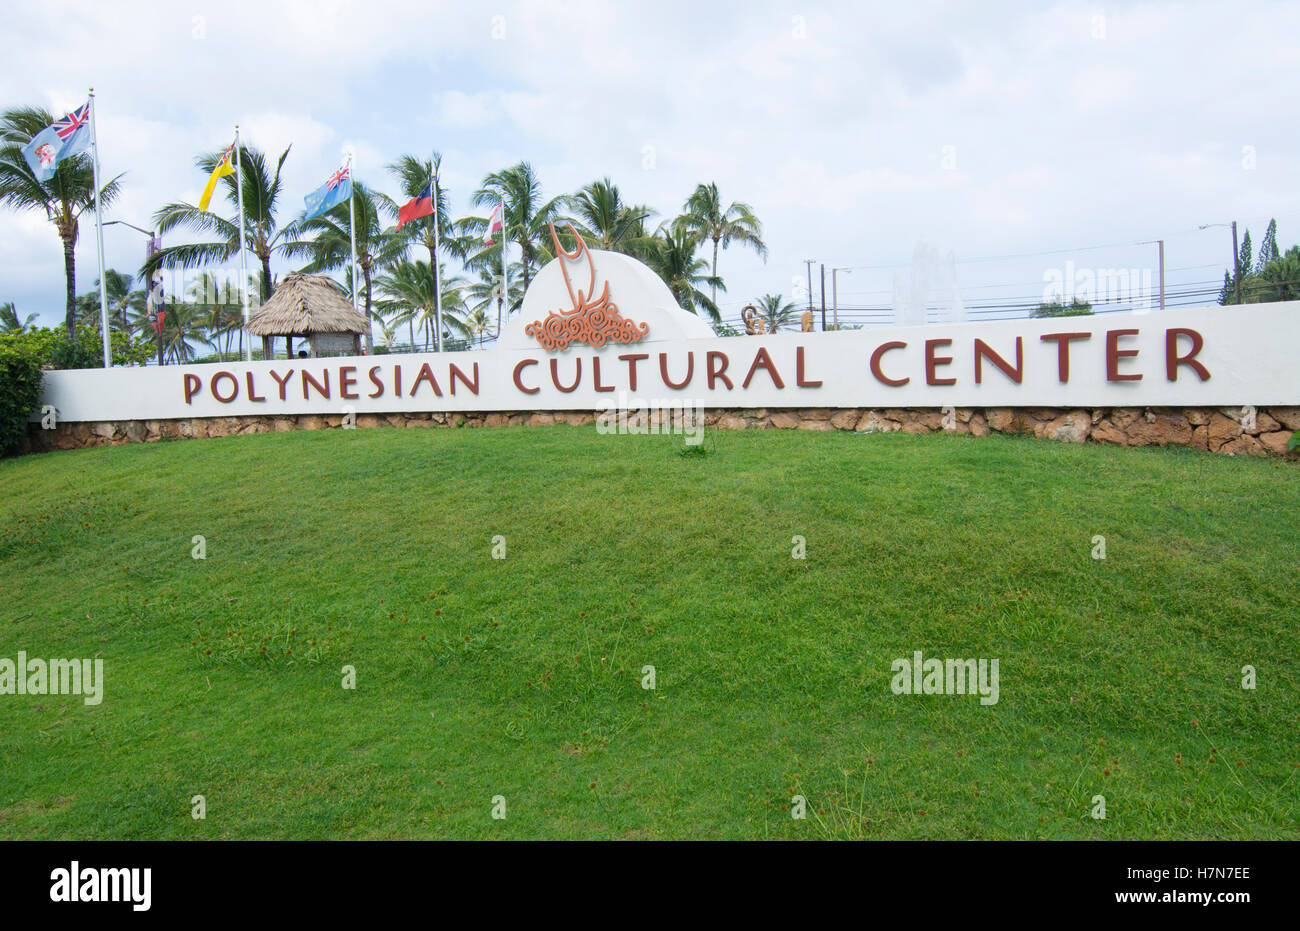 Laie Hawaii Polynesian Cultural Center entrance sign - Stock Image